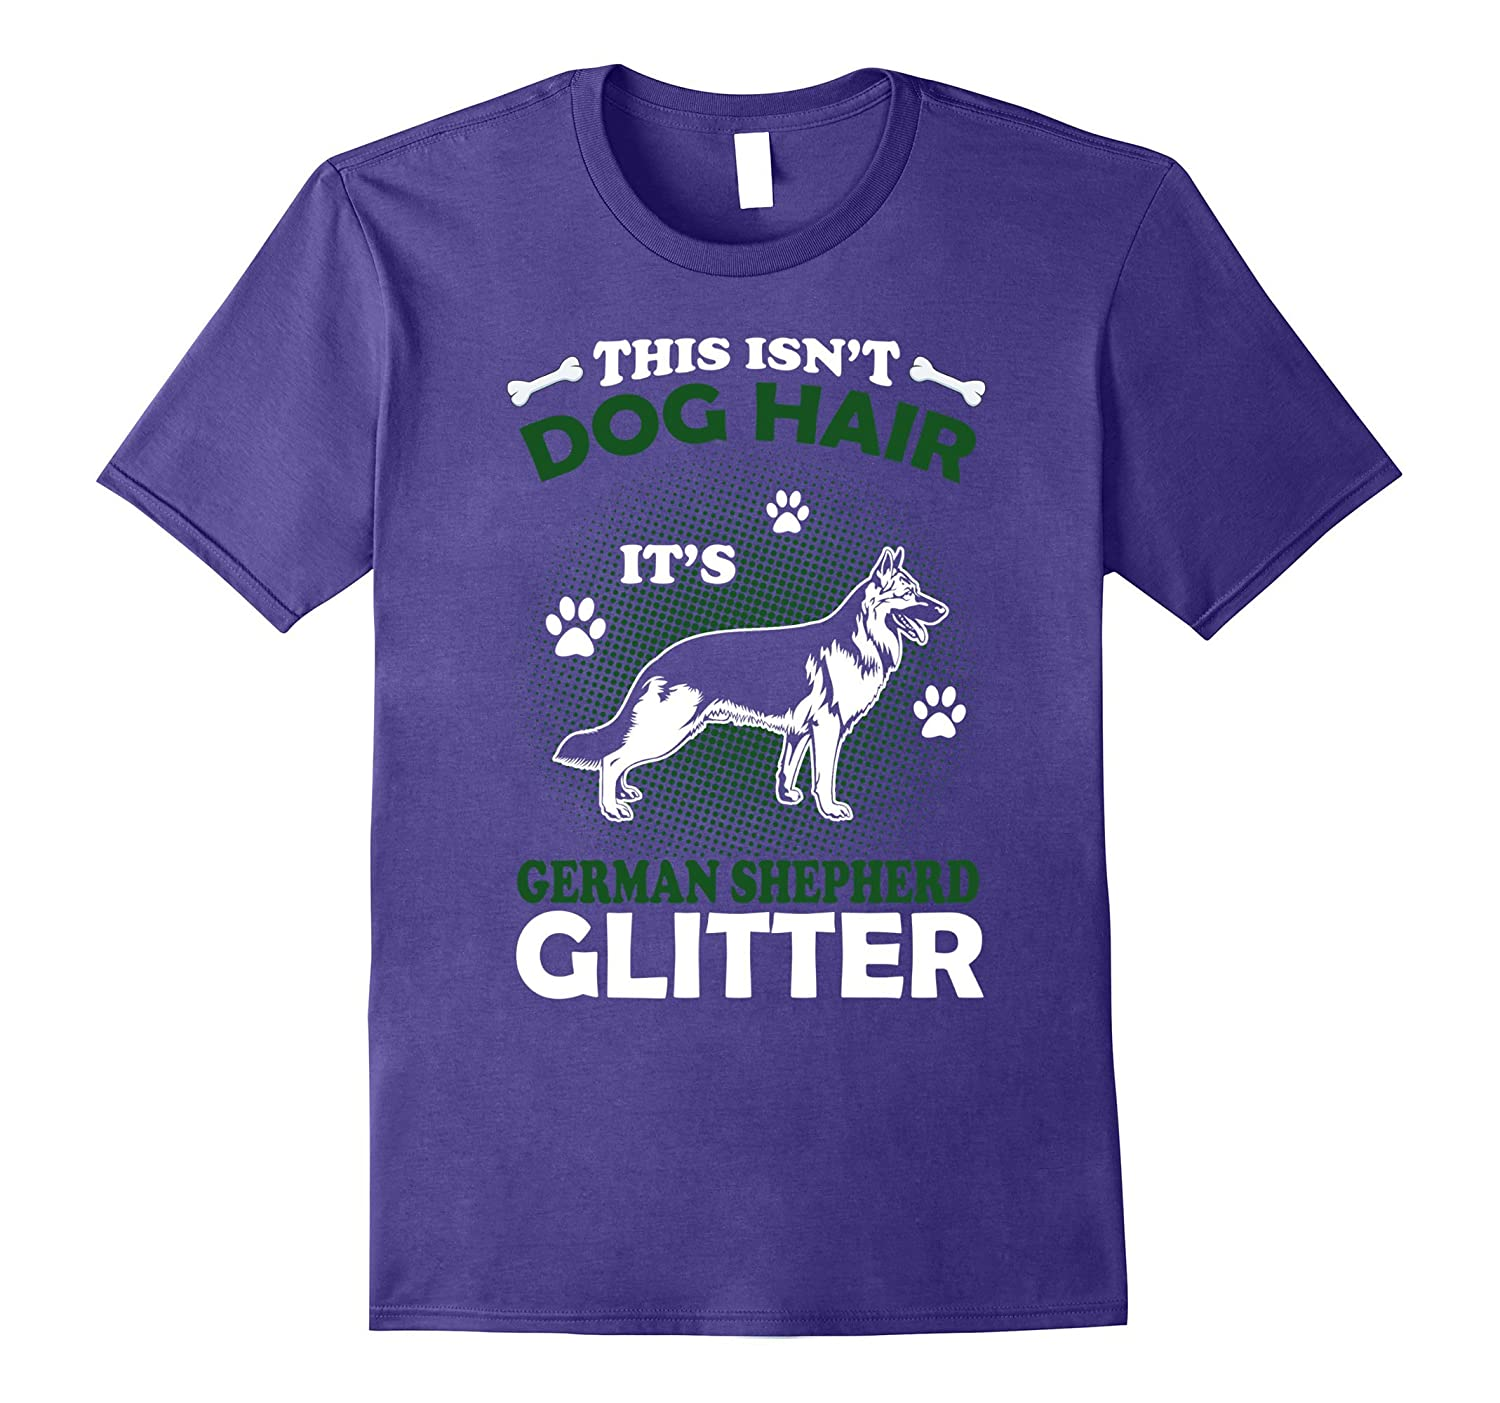 This Isn't Dog Hair It's German Shepherd Glitter T Shirt-FL